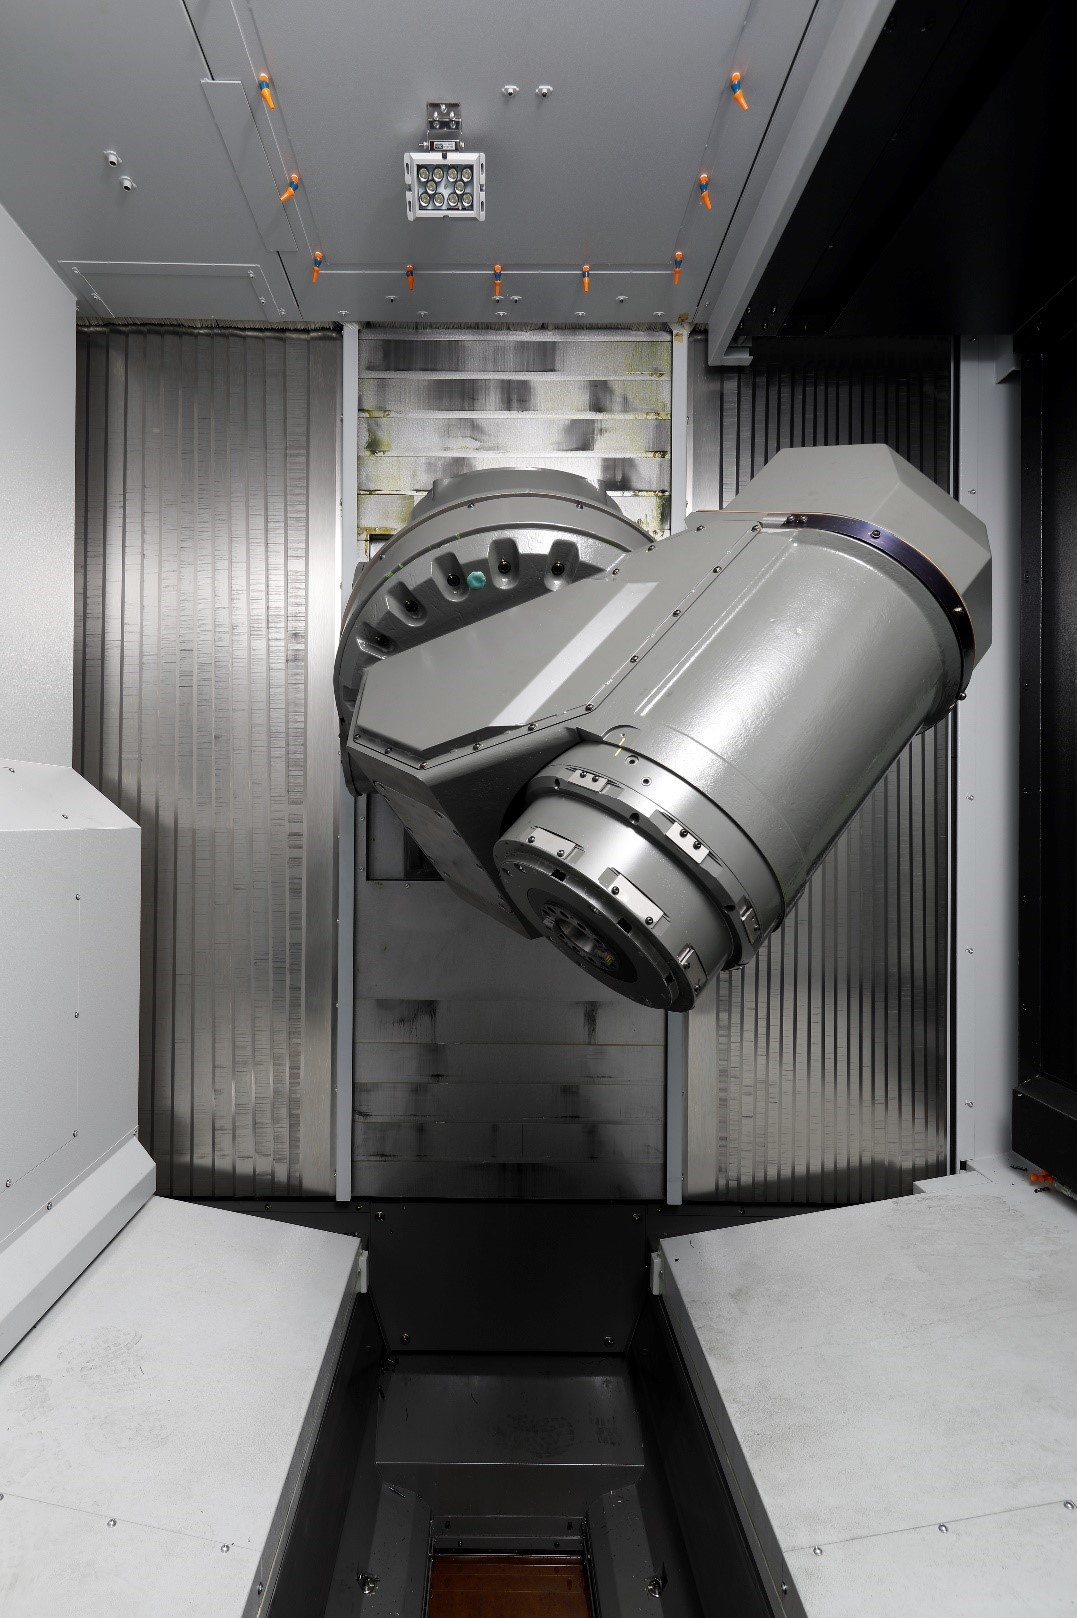 FH630SX-i 5-Axis Spindle